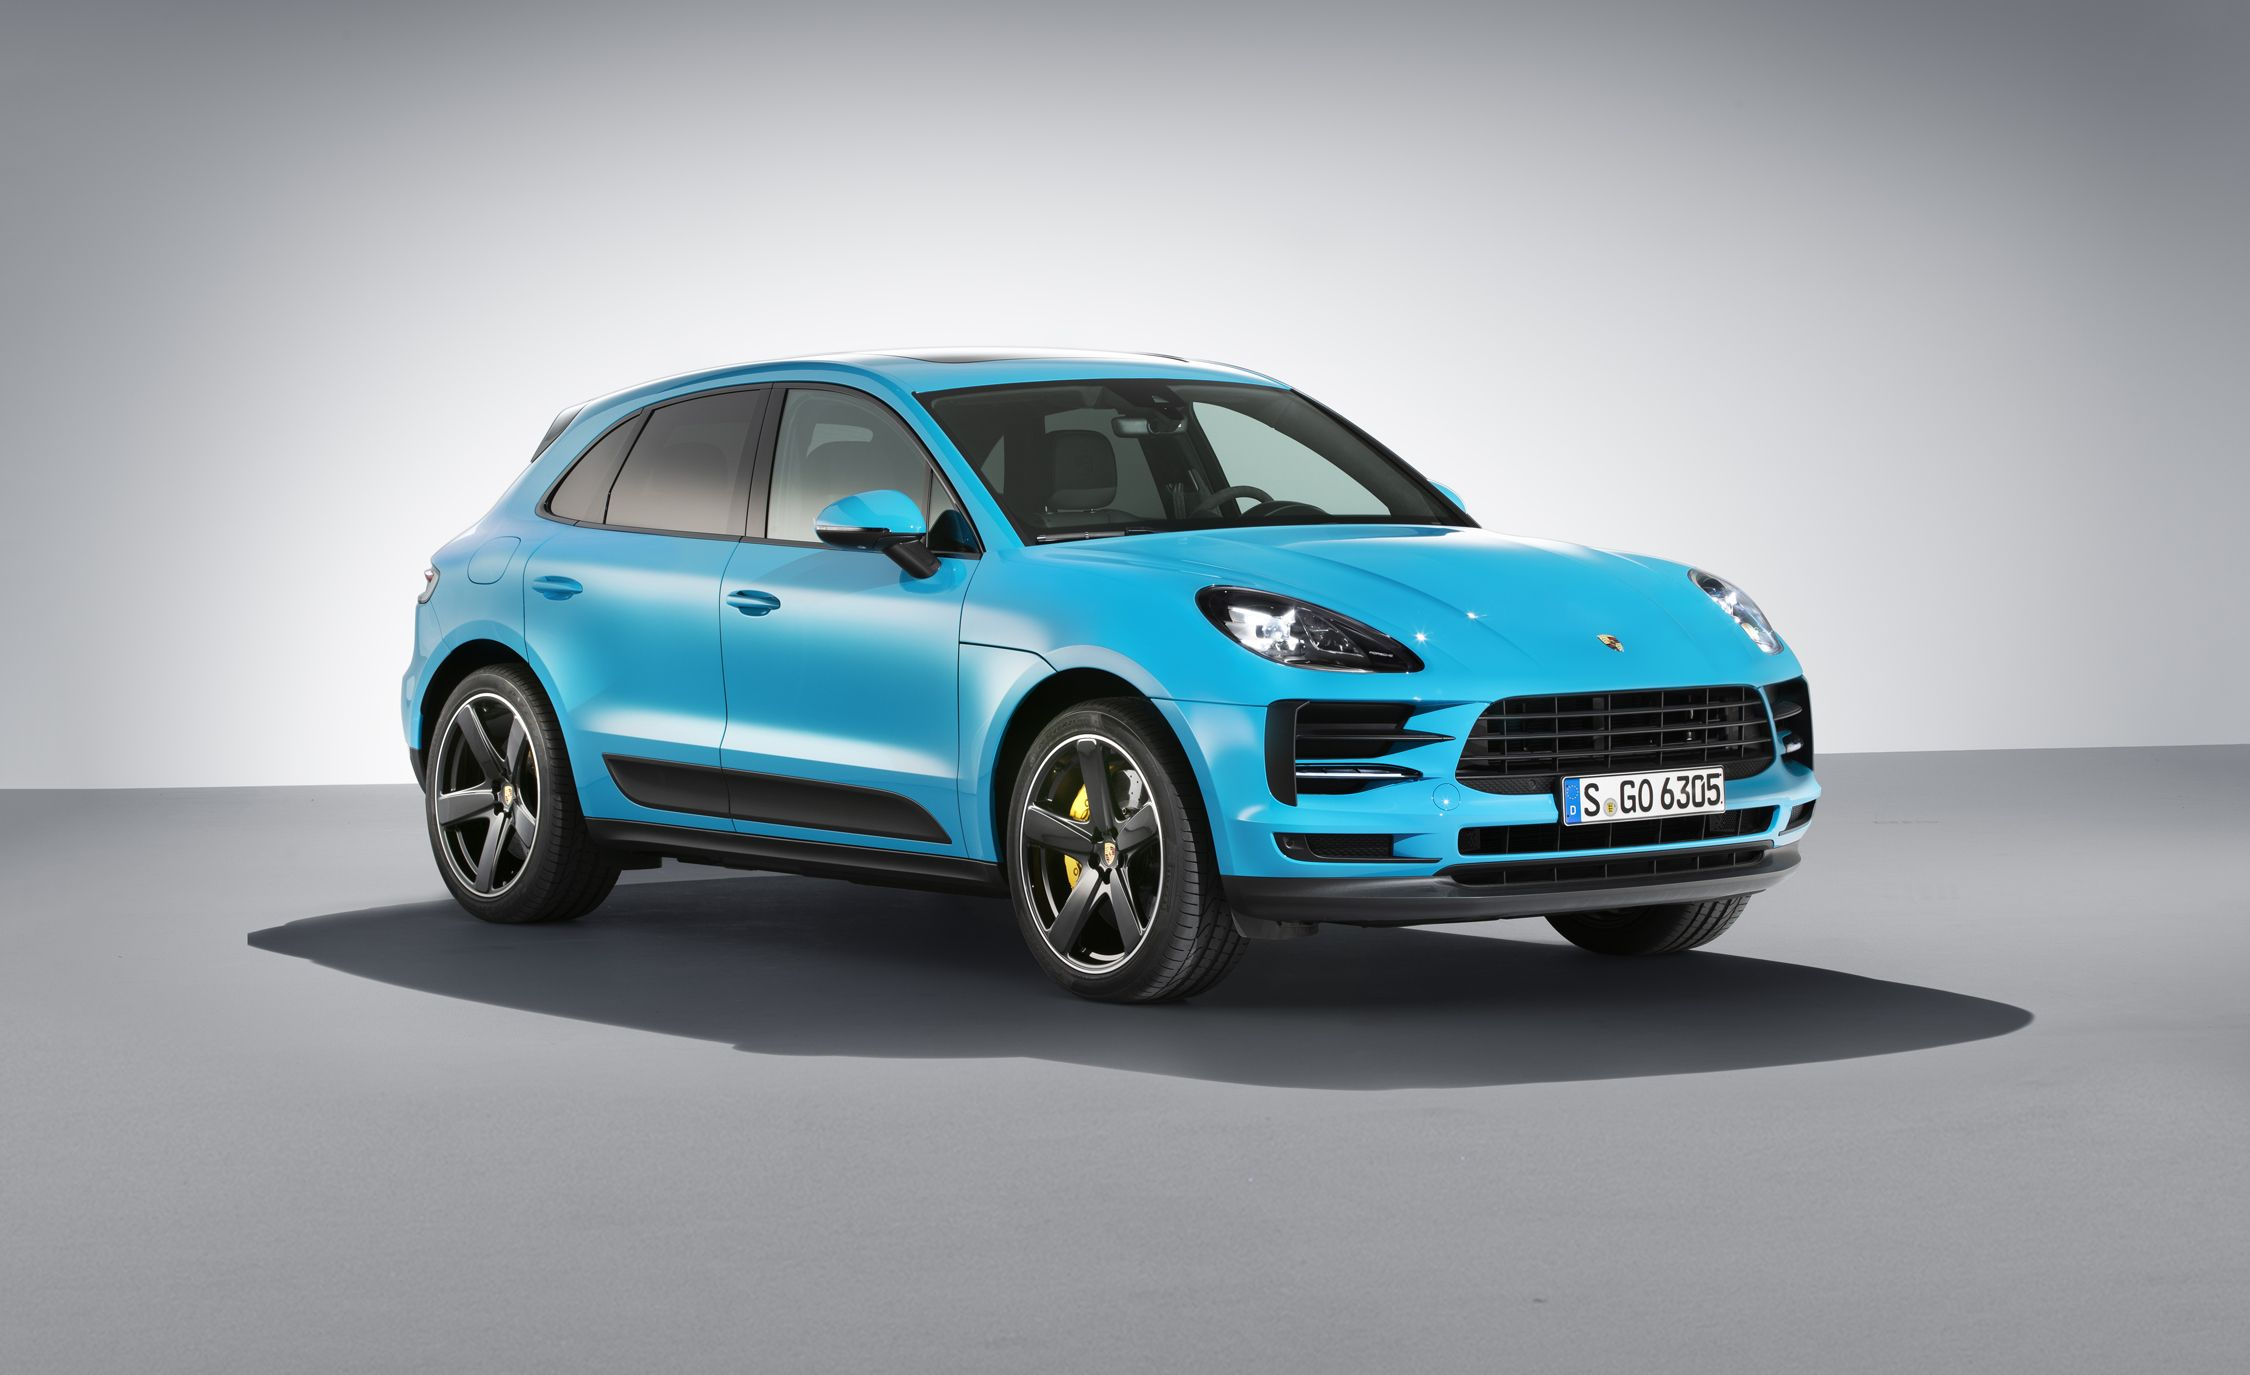 Porsche Macan Lease >> 2019 Porsche Macan: New Look, New V-6s, More Power | News ...